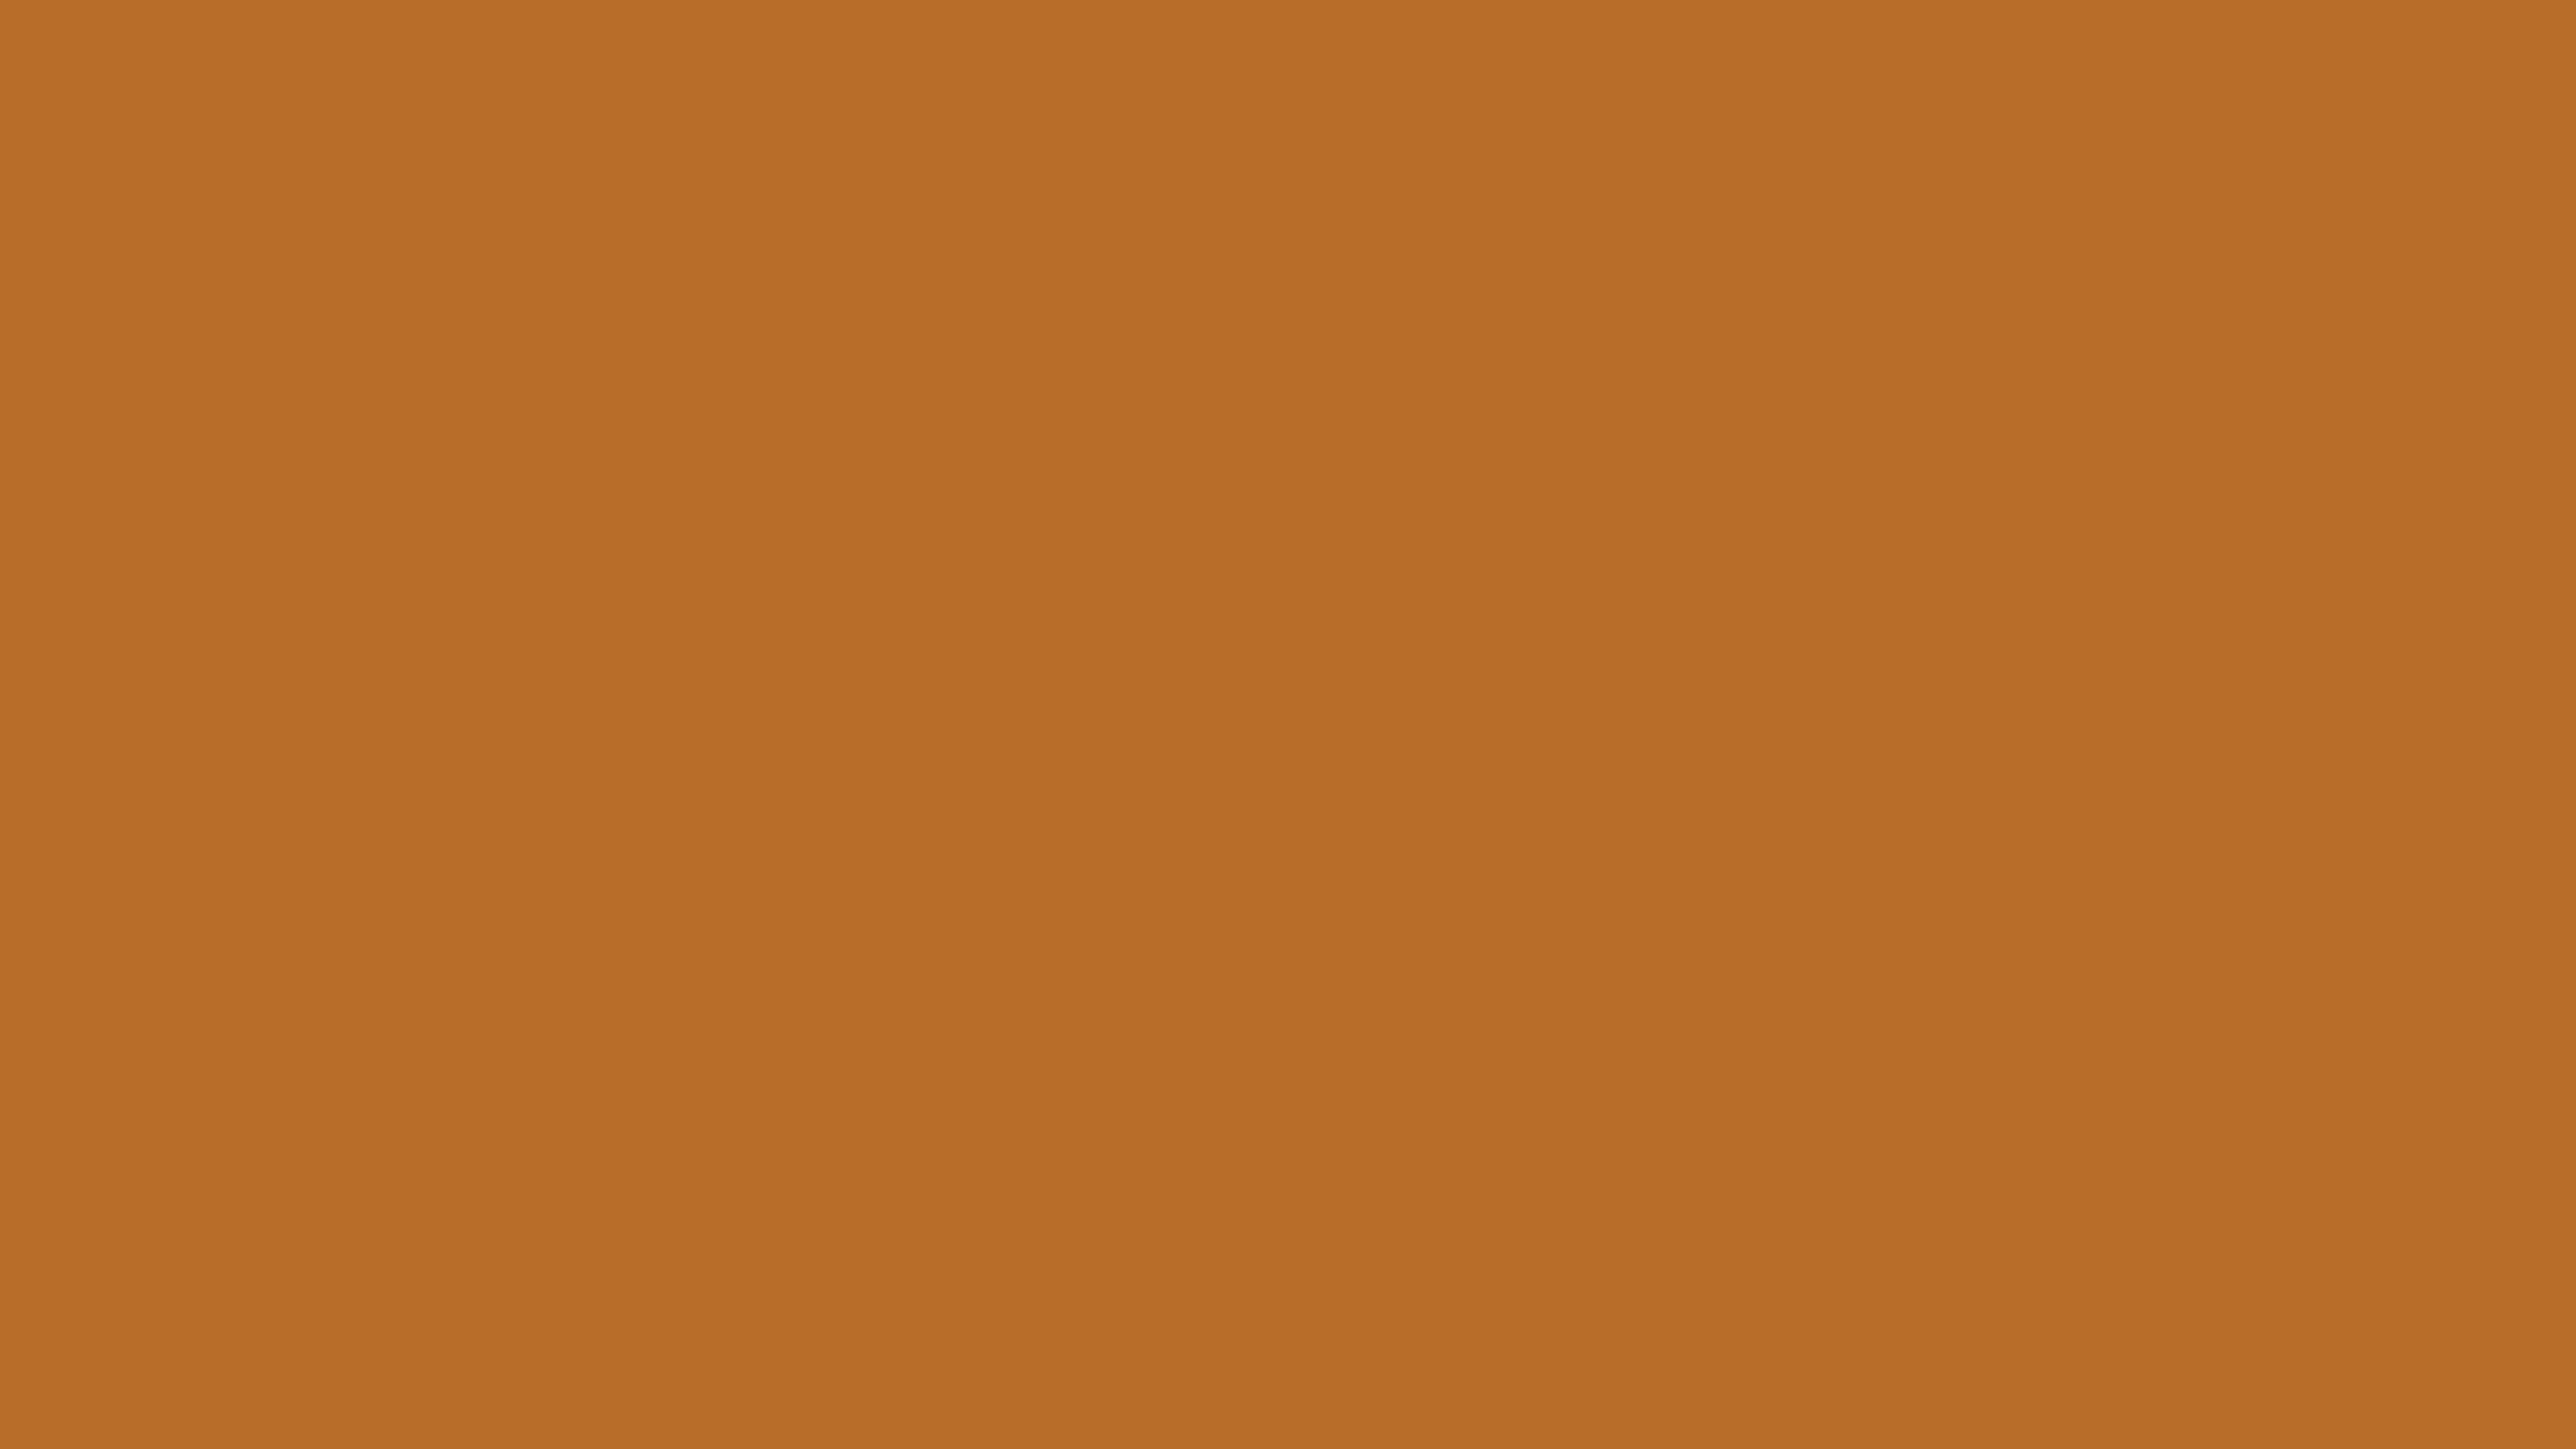 4096x2304 Liver Dogs Solid Color Background